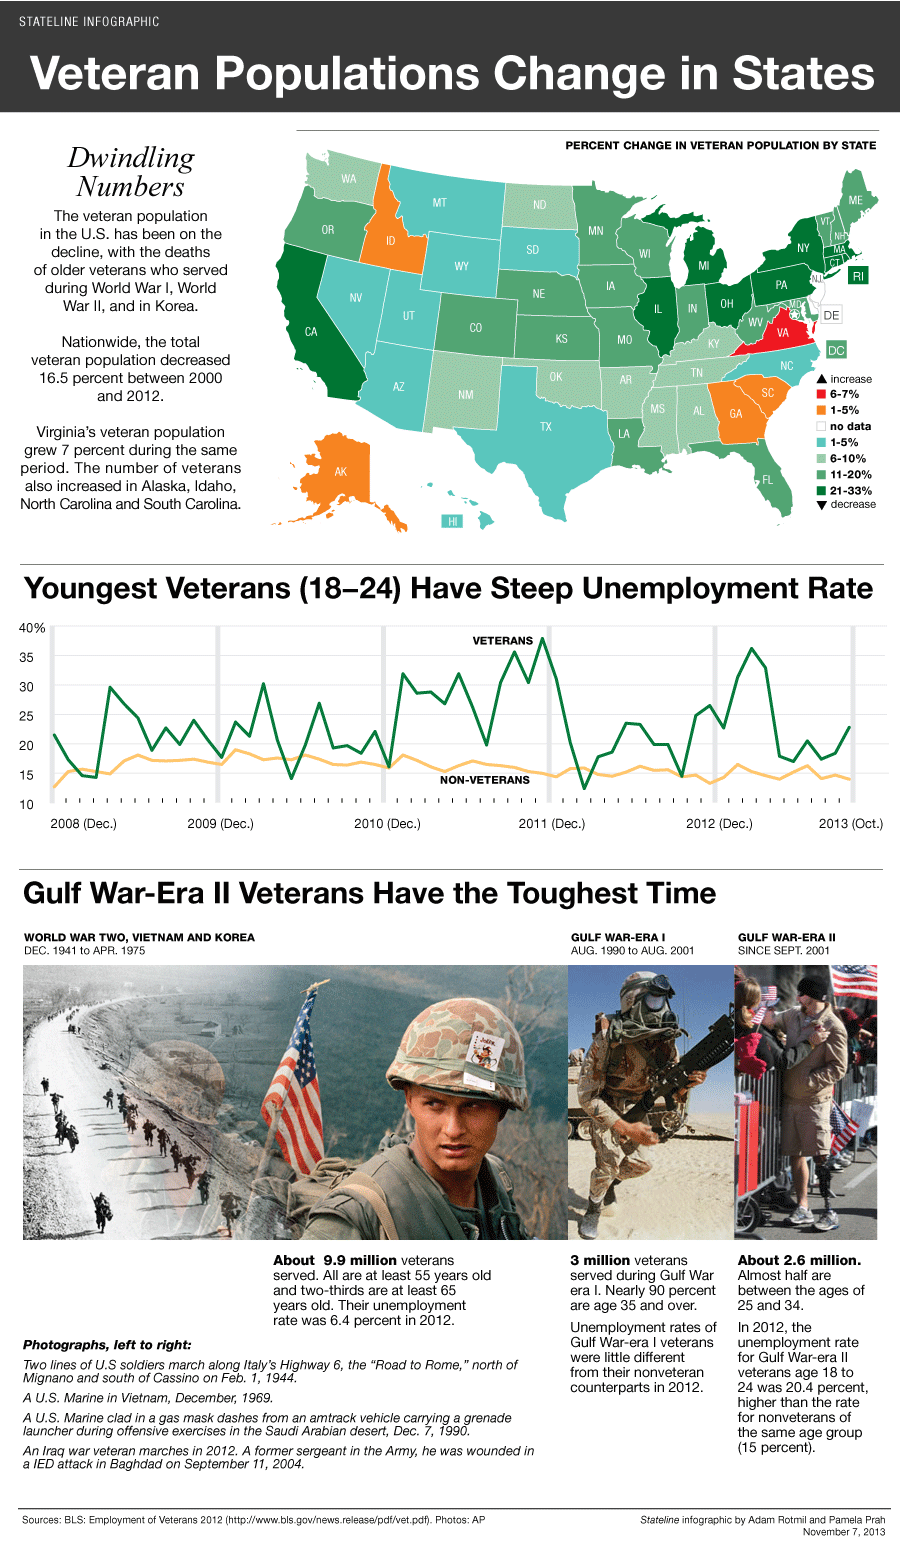 Young Veterans Have the Hardest Time Finding Work